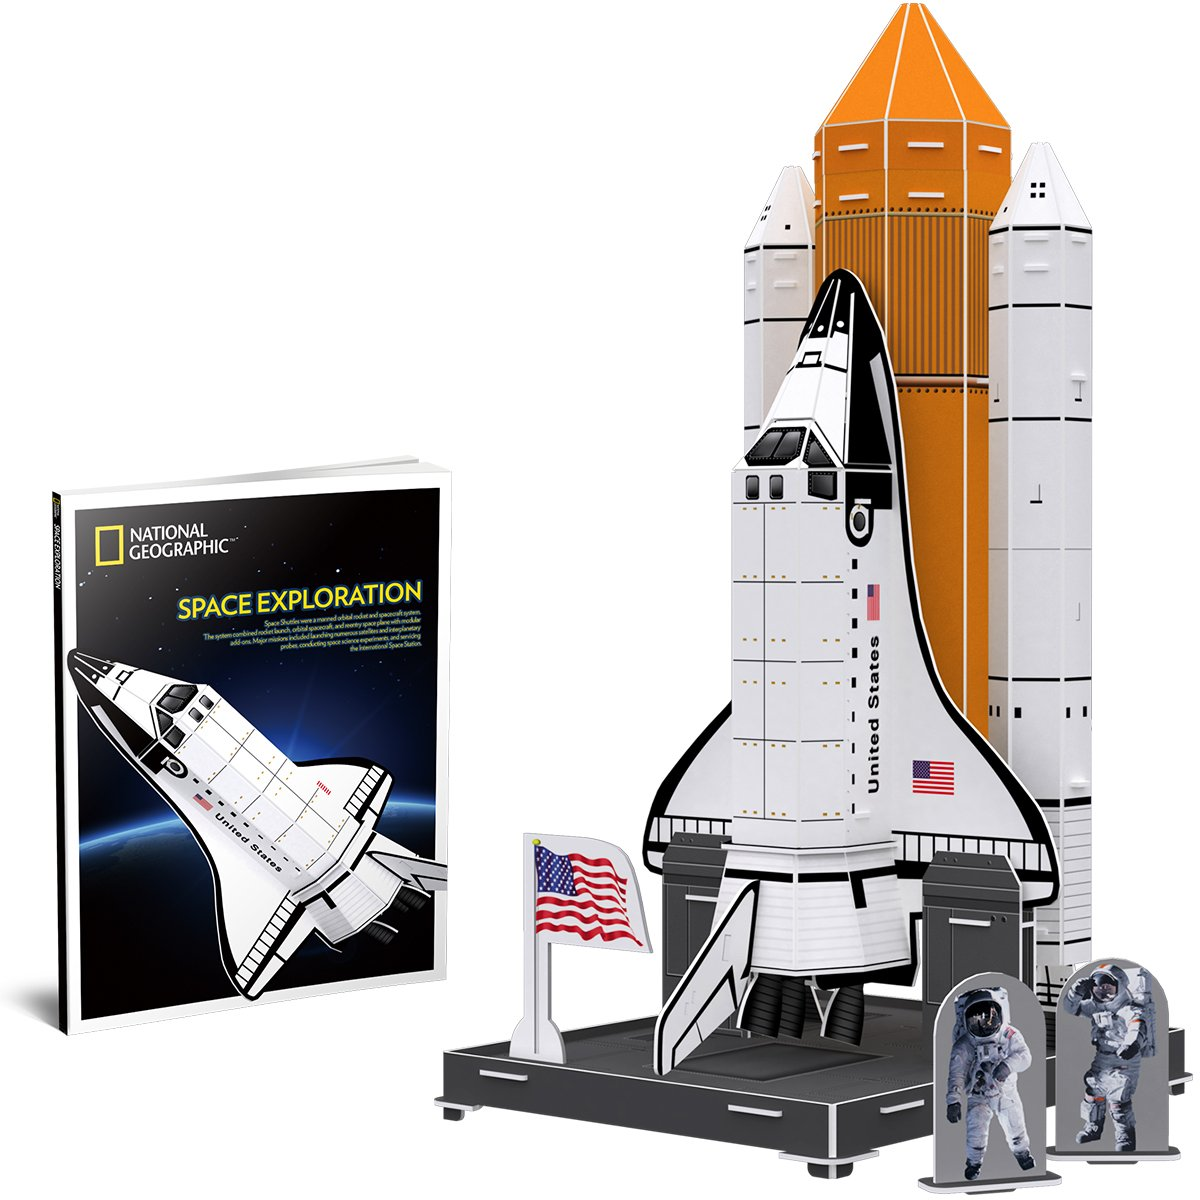 CubicFun-National Geographic NASA Space Ship Toy,Kids 3D Puzzle Model kit with Booklet,DS0970h